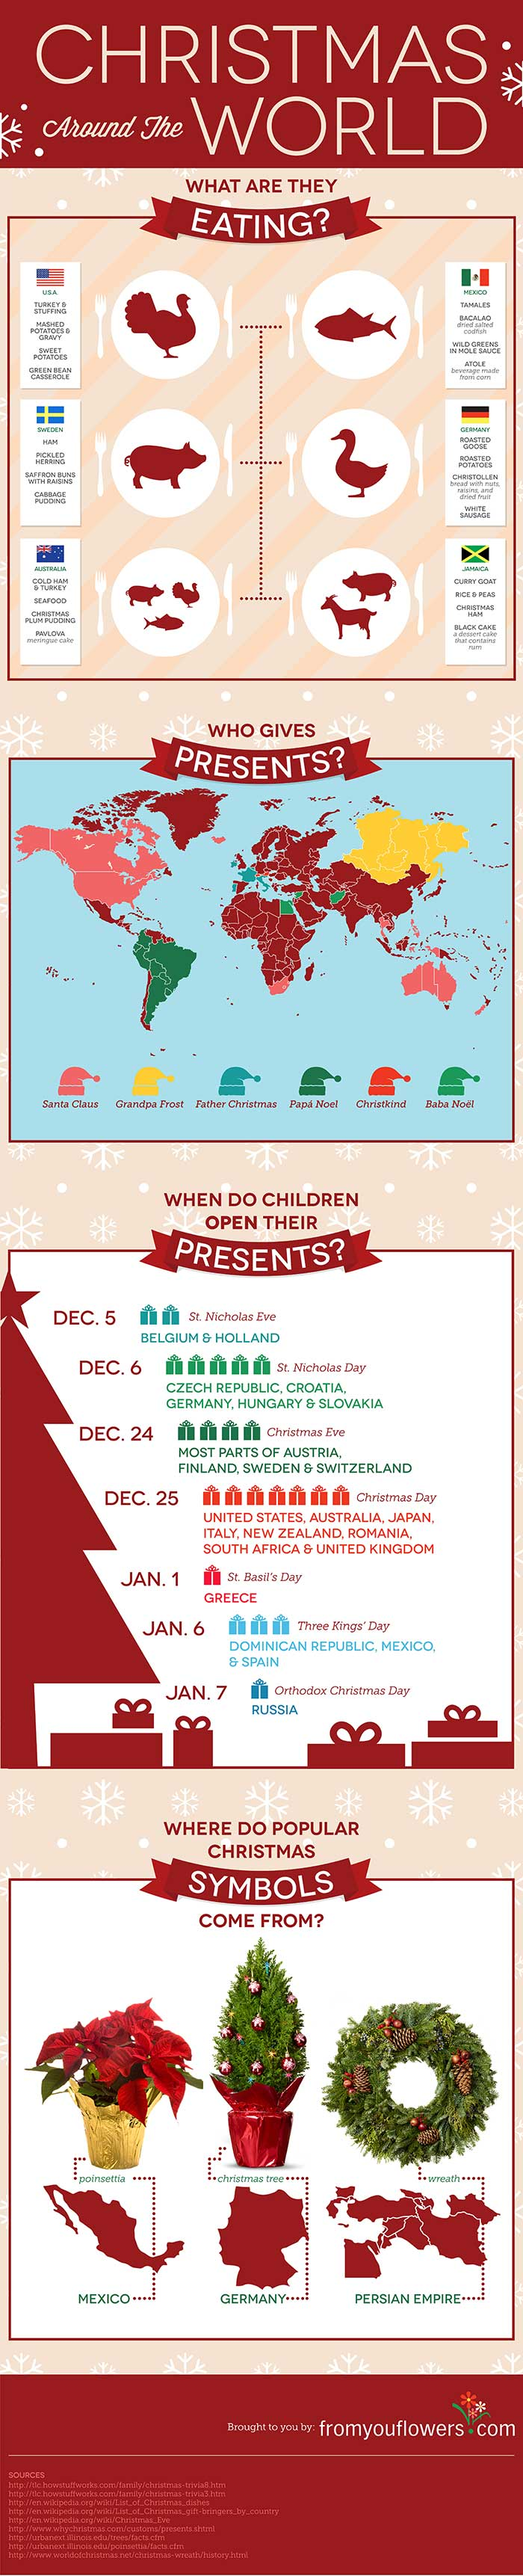 Christmas Traditions Around the World infographic, brought to you by From You Flowers